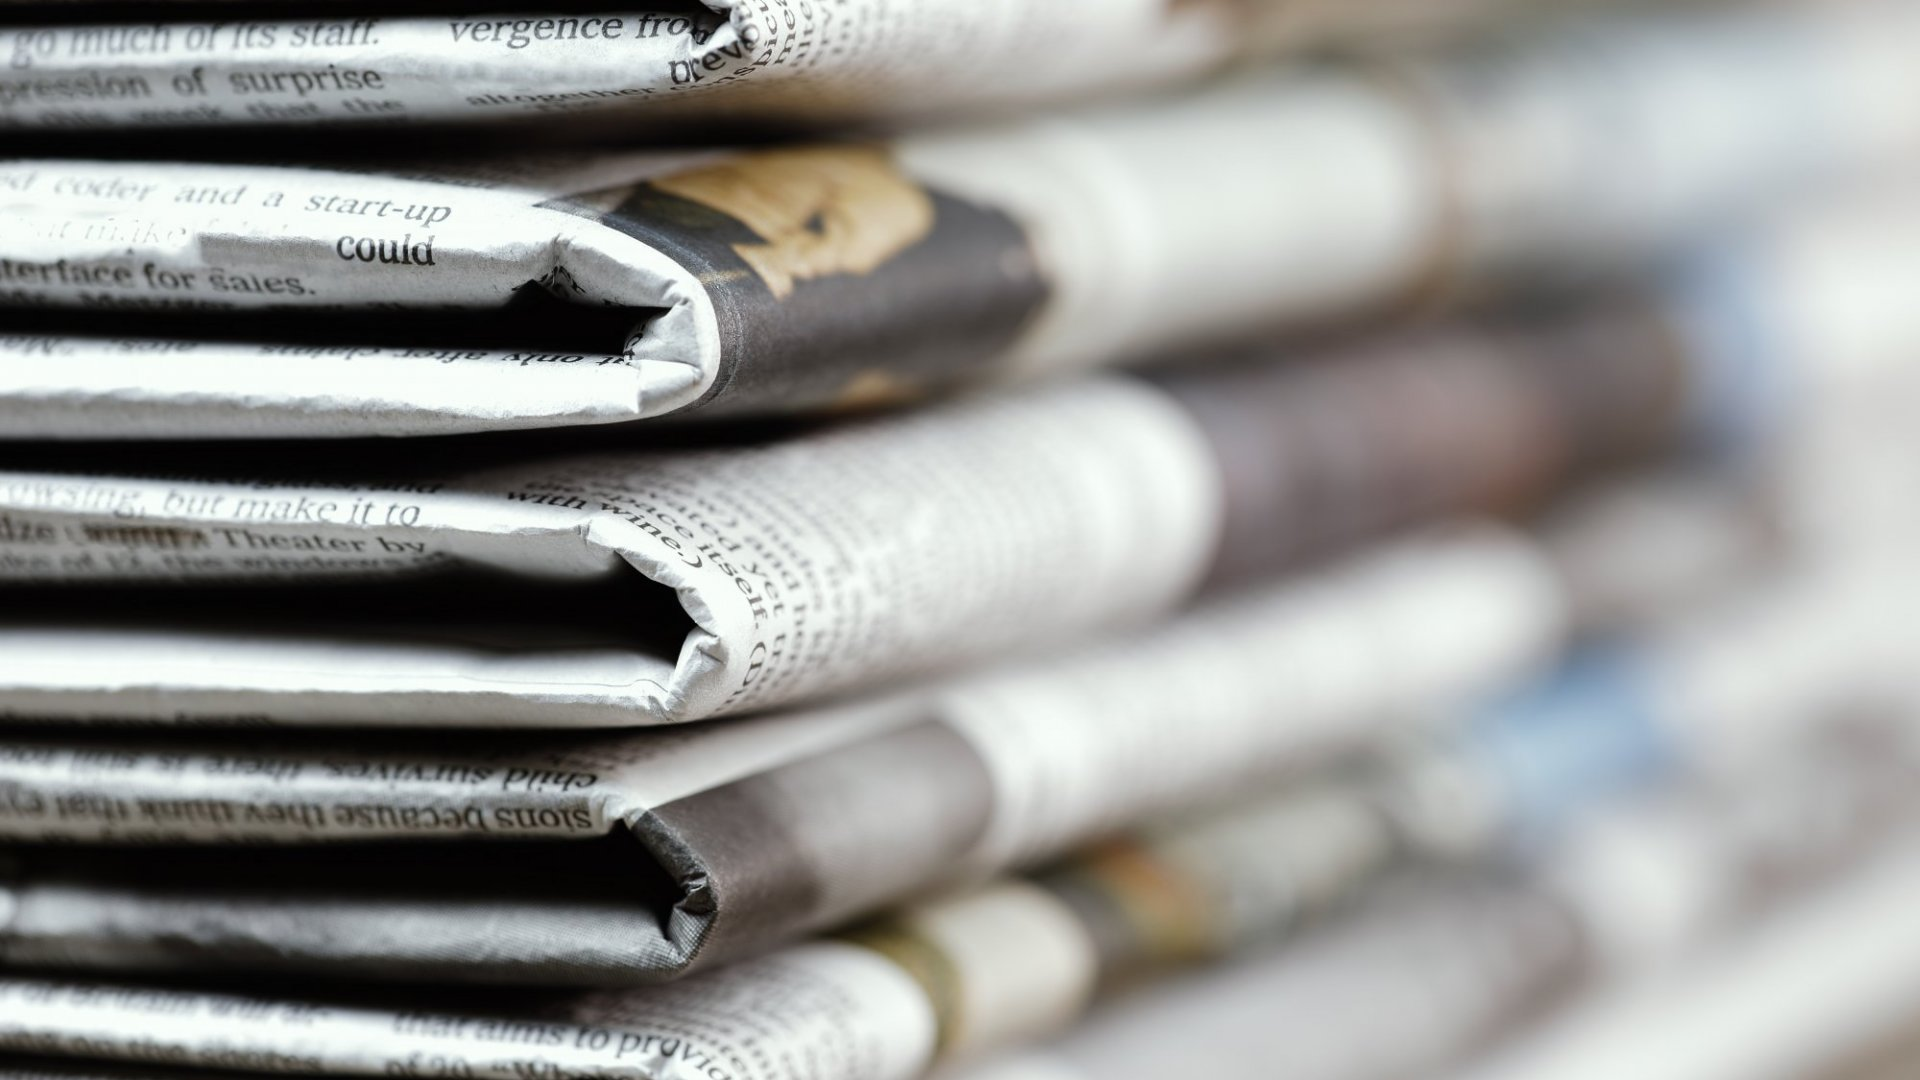 How to Write and Distribute Your Own Press Releases (and Common Misassumptions Business Owners Make)